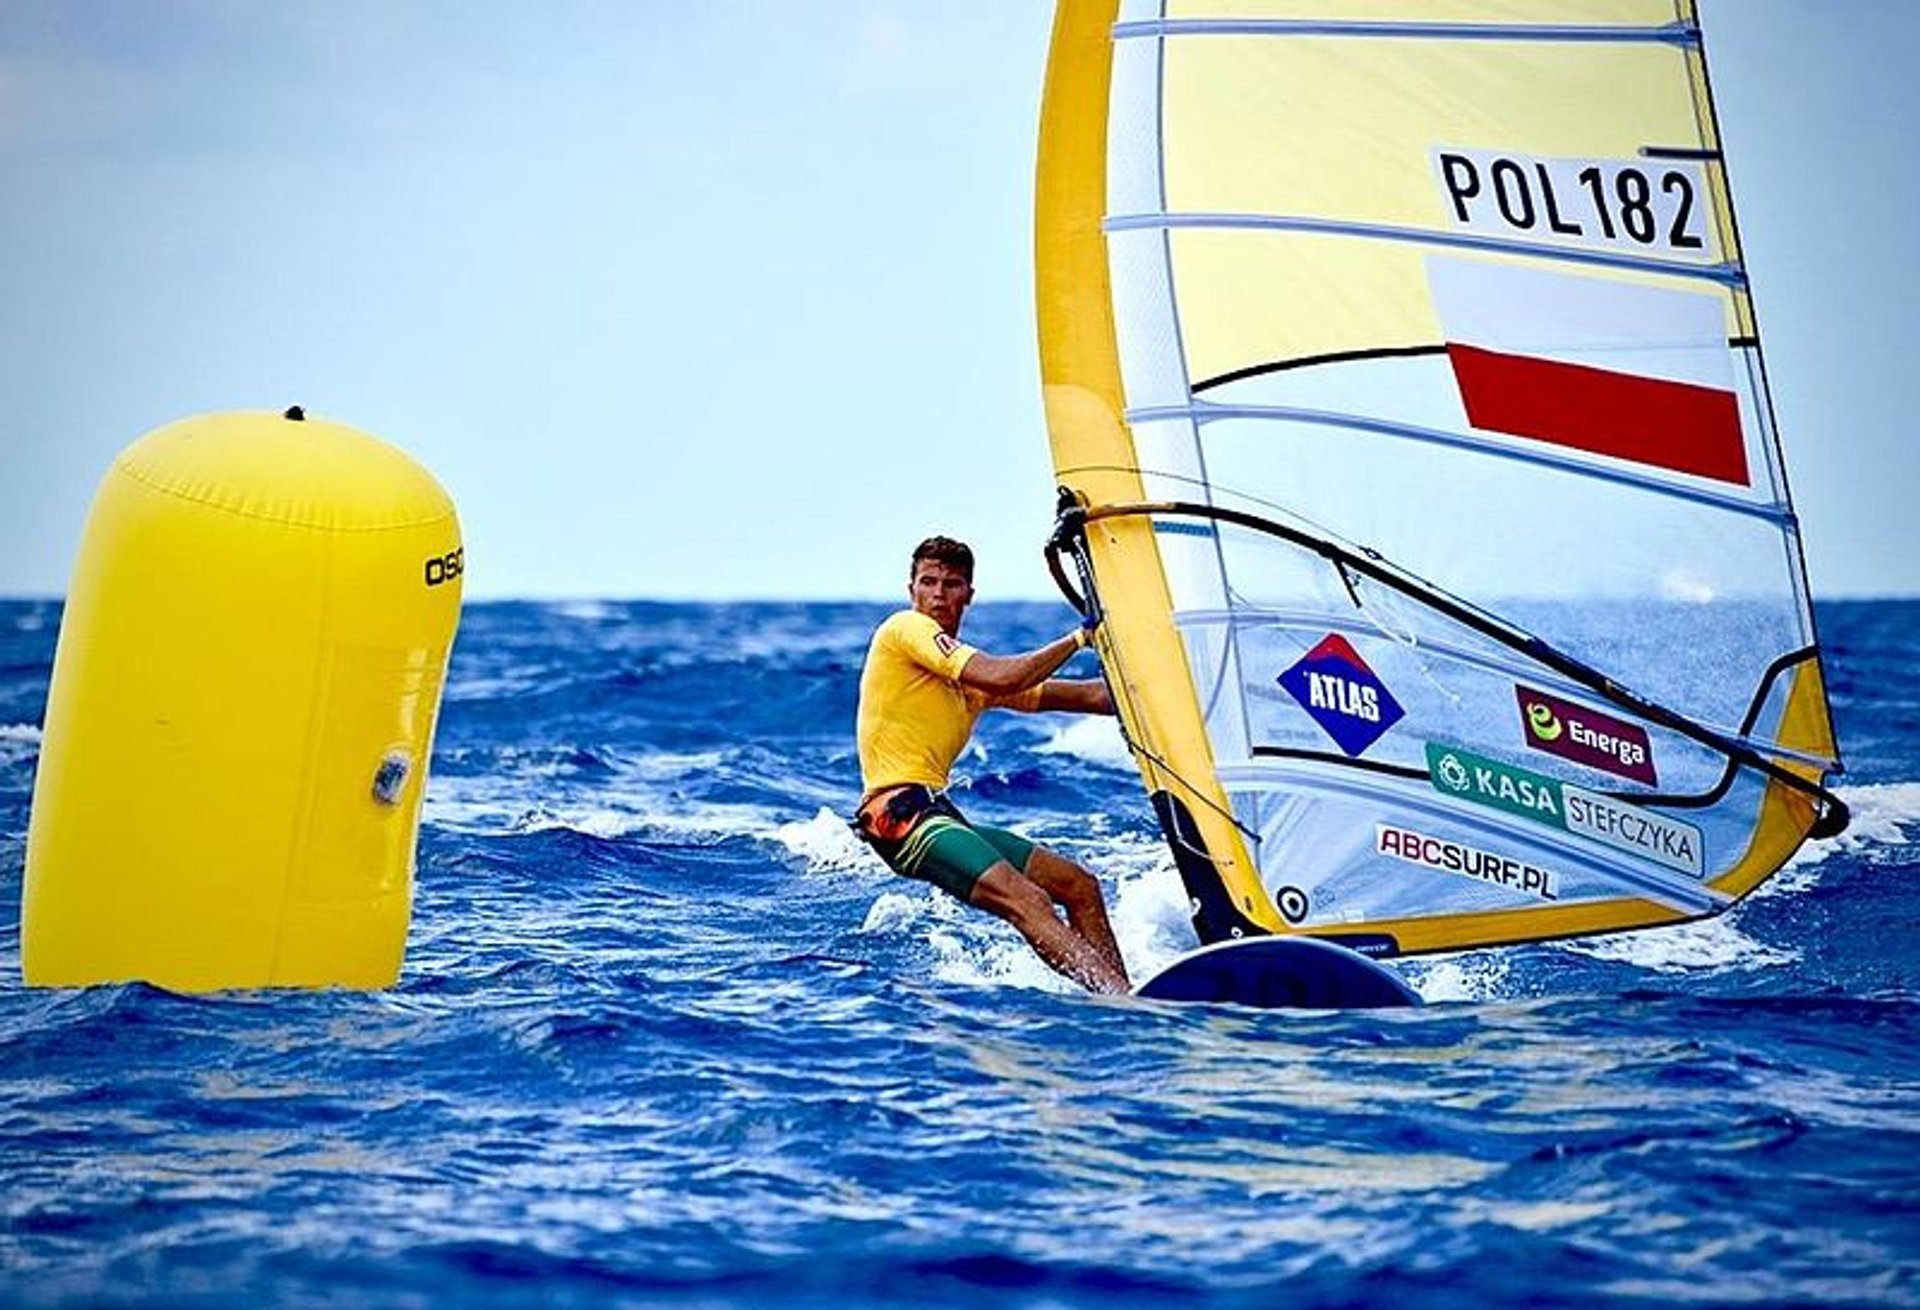 Kitesurfing and Windsurfing  in Sicily 2020 - Best Time